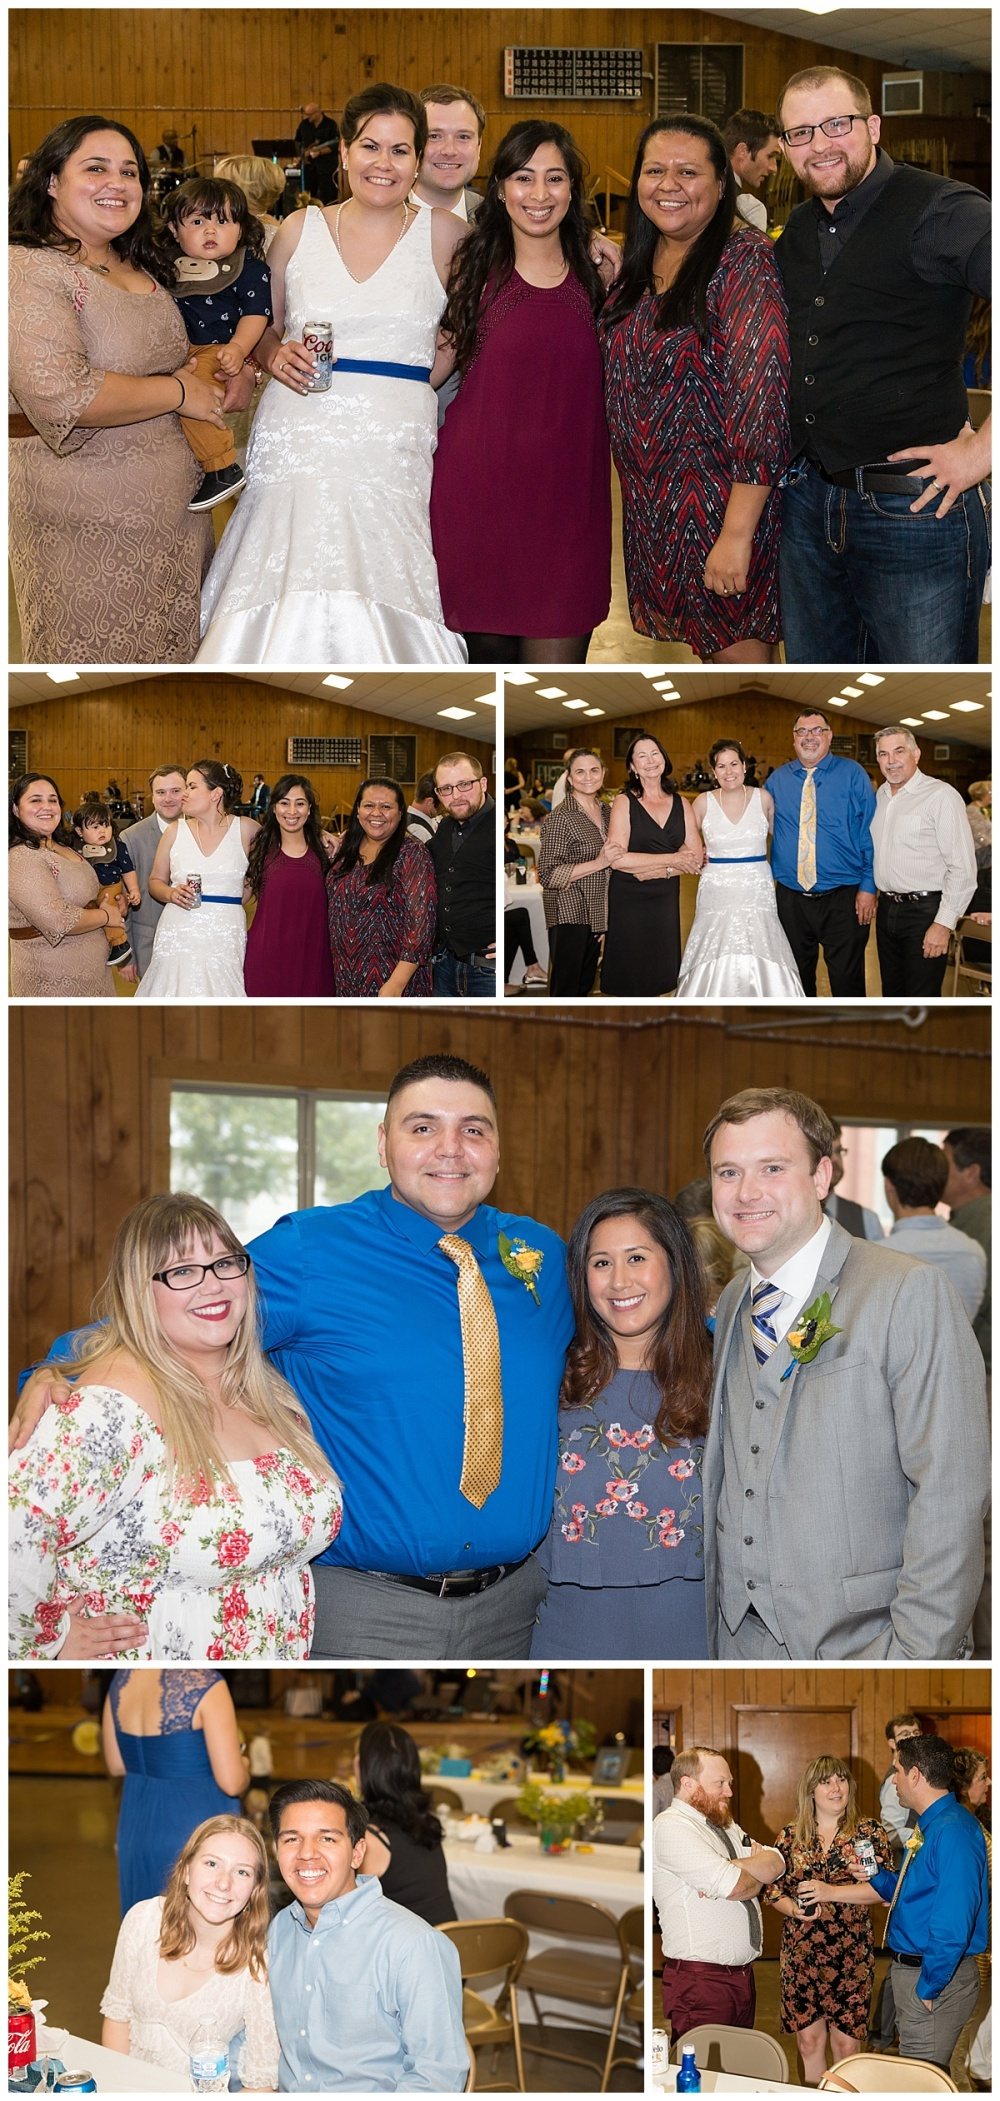 Texas-Wedding-Photographer-La-Coste-Our-Lady-Of-Grace-Church-Bride-Groom-Lego-Theme-Carly-Barton-Photography_0075.jpg